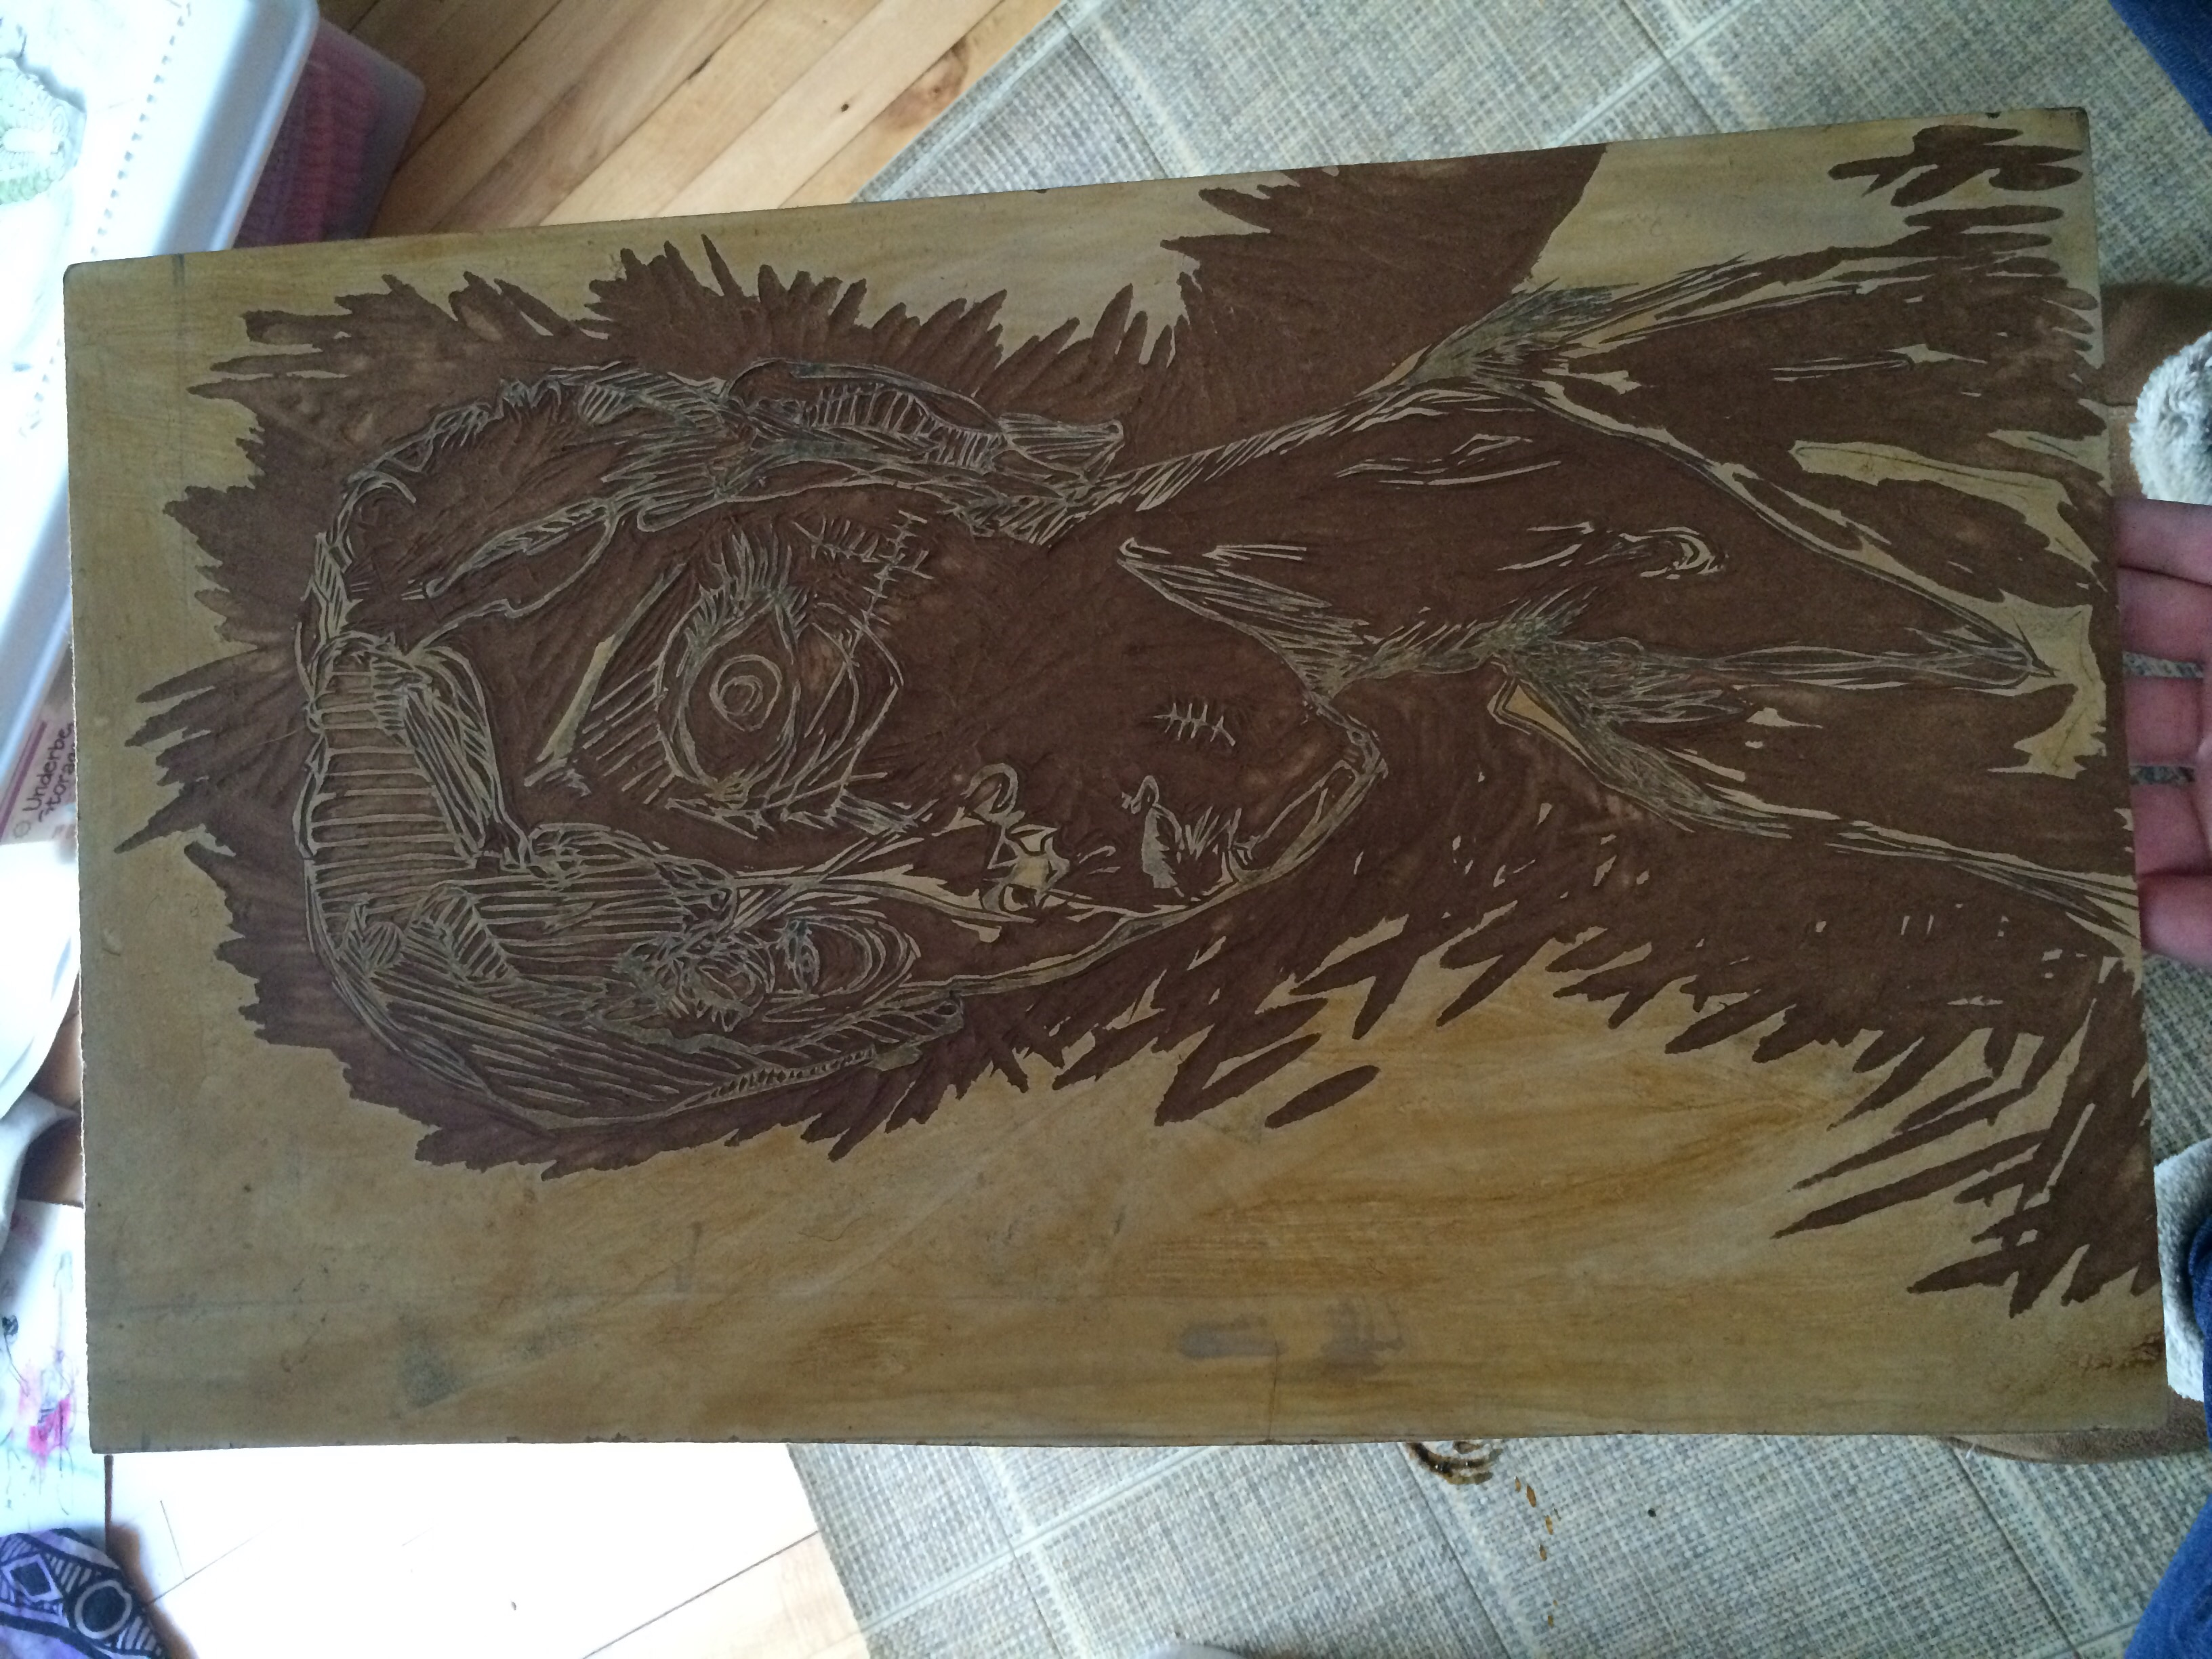 Waiting for the sealant on the block to dry - will be ready for inking tomorrow!